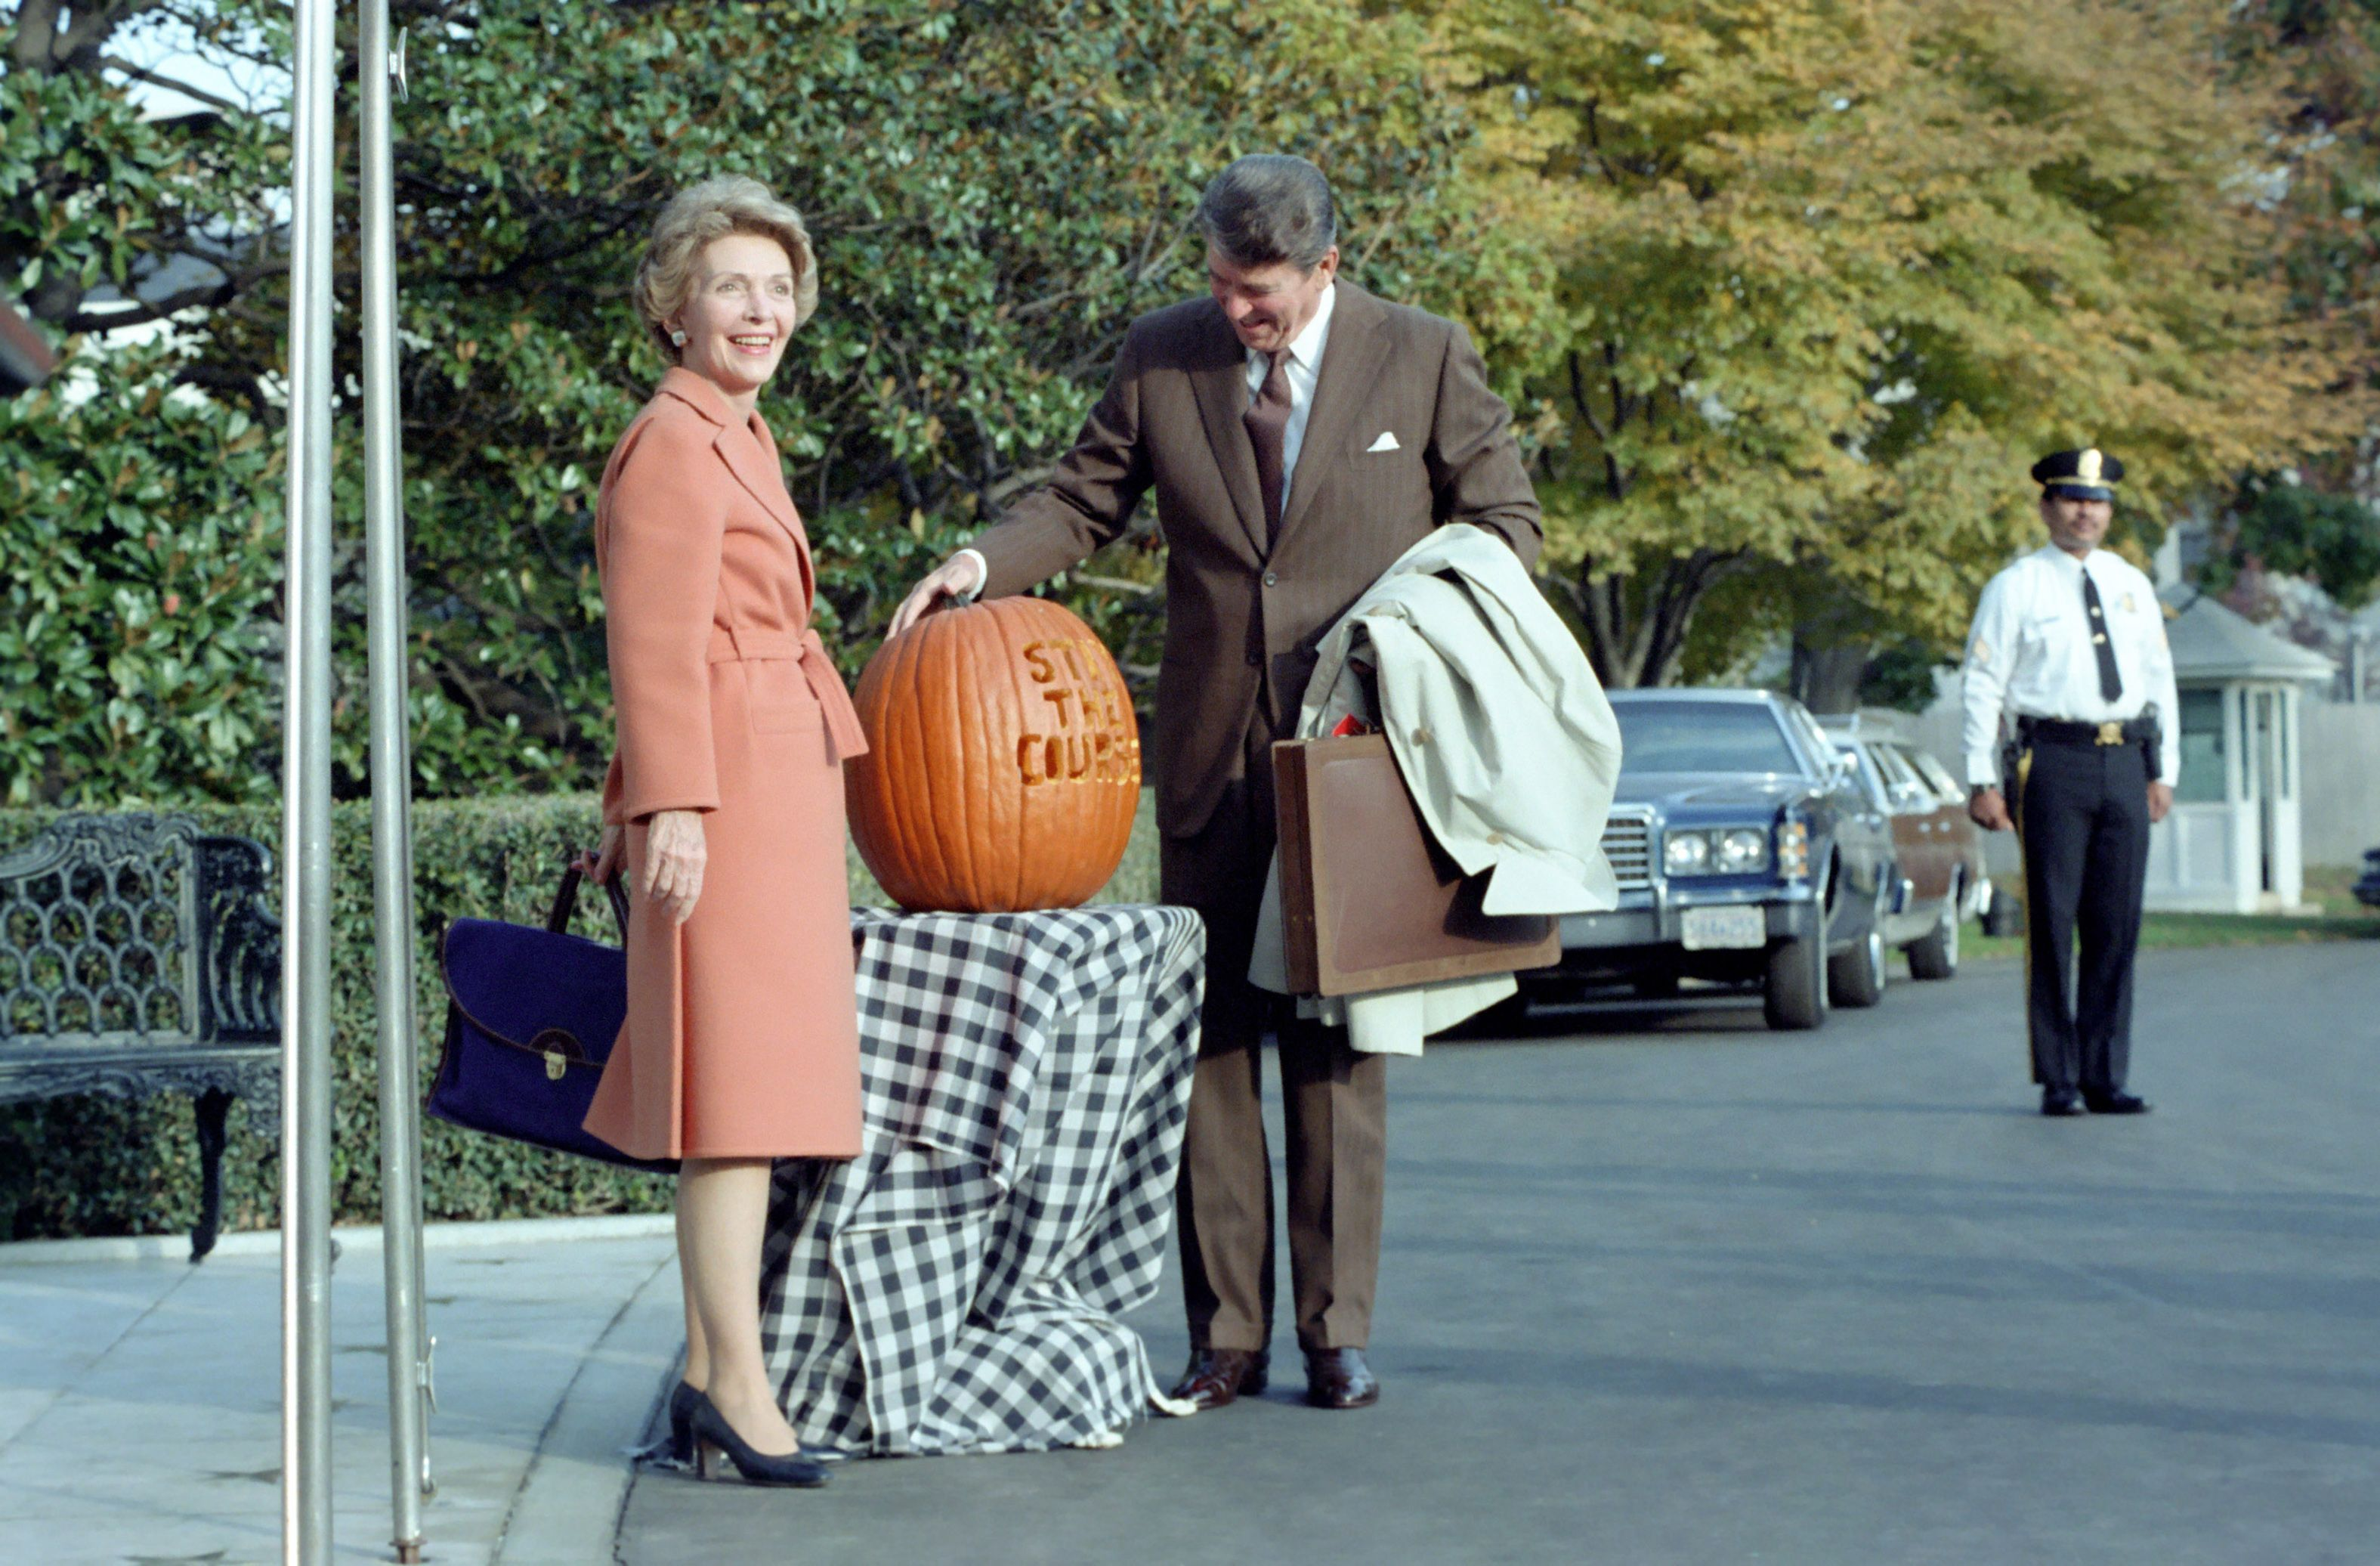 1000+ images about US Presidents on Pinterest | Nancy reagan ...